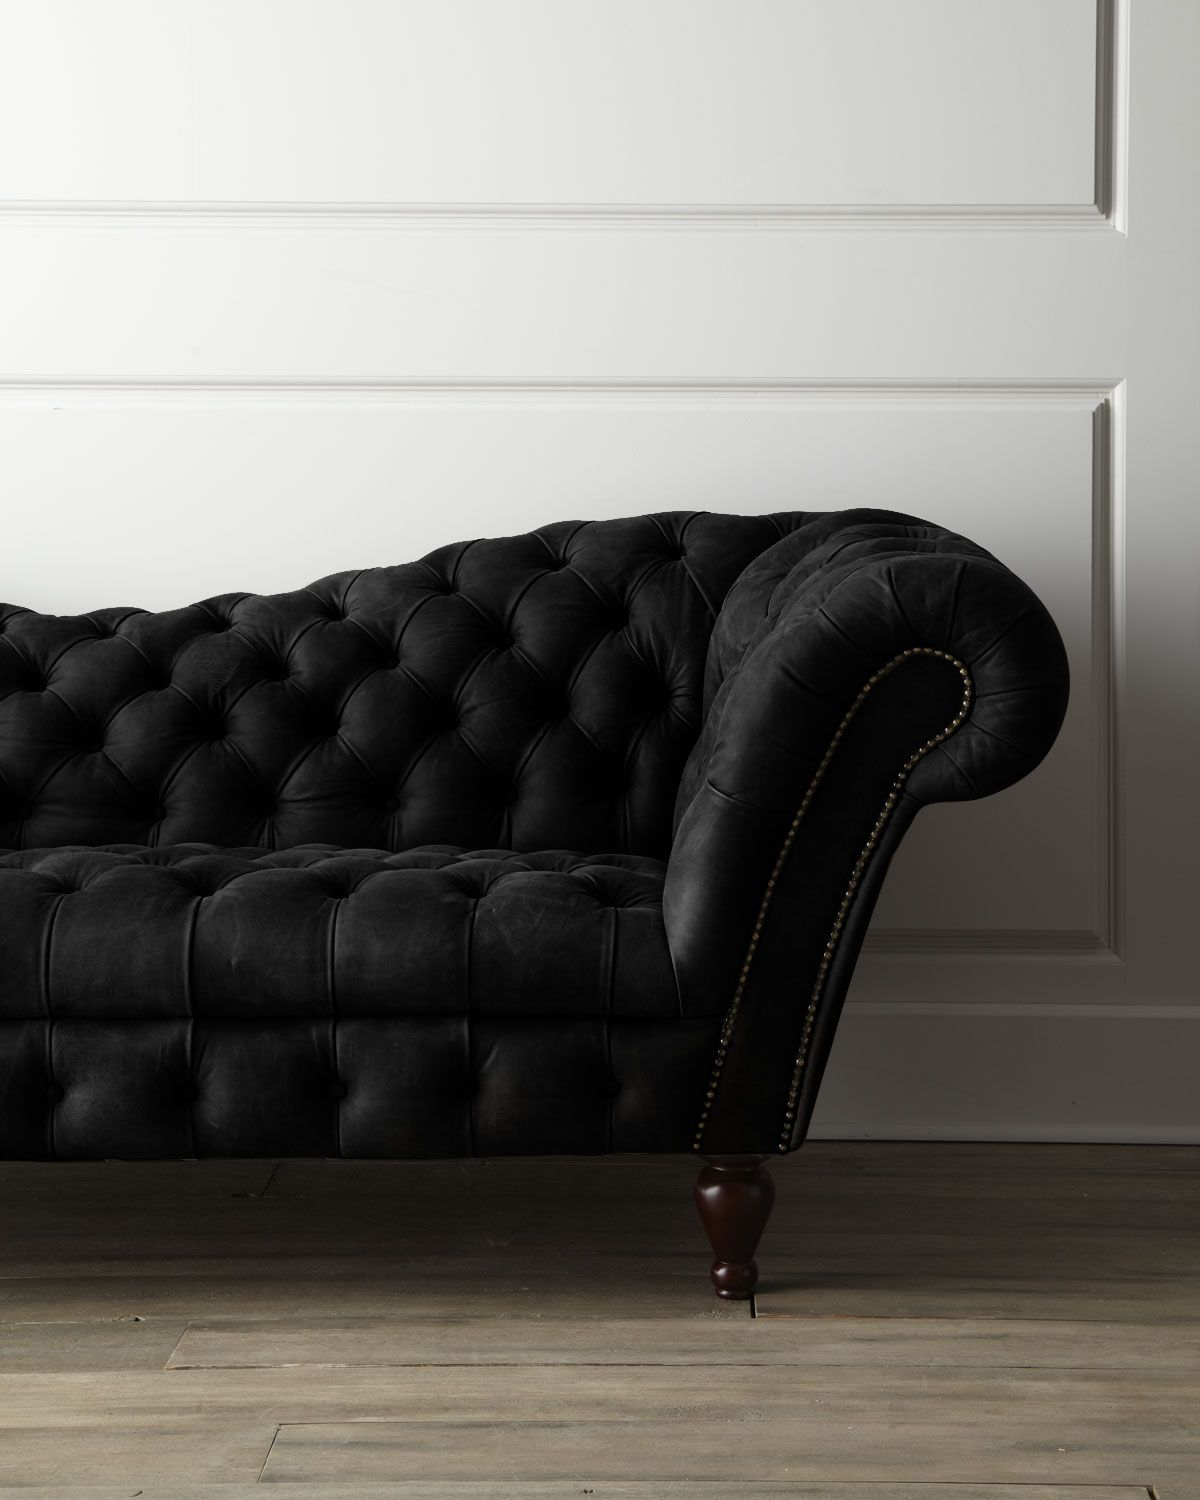 Black Leather Sofa 3 Home Design Sofa Black Couches Furniture